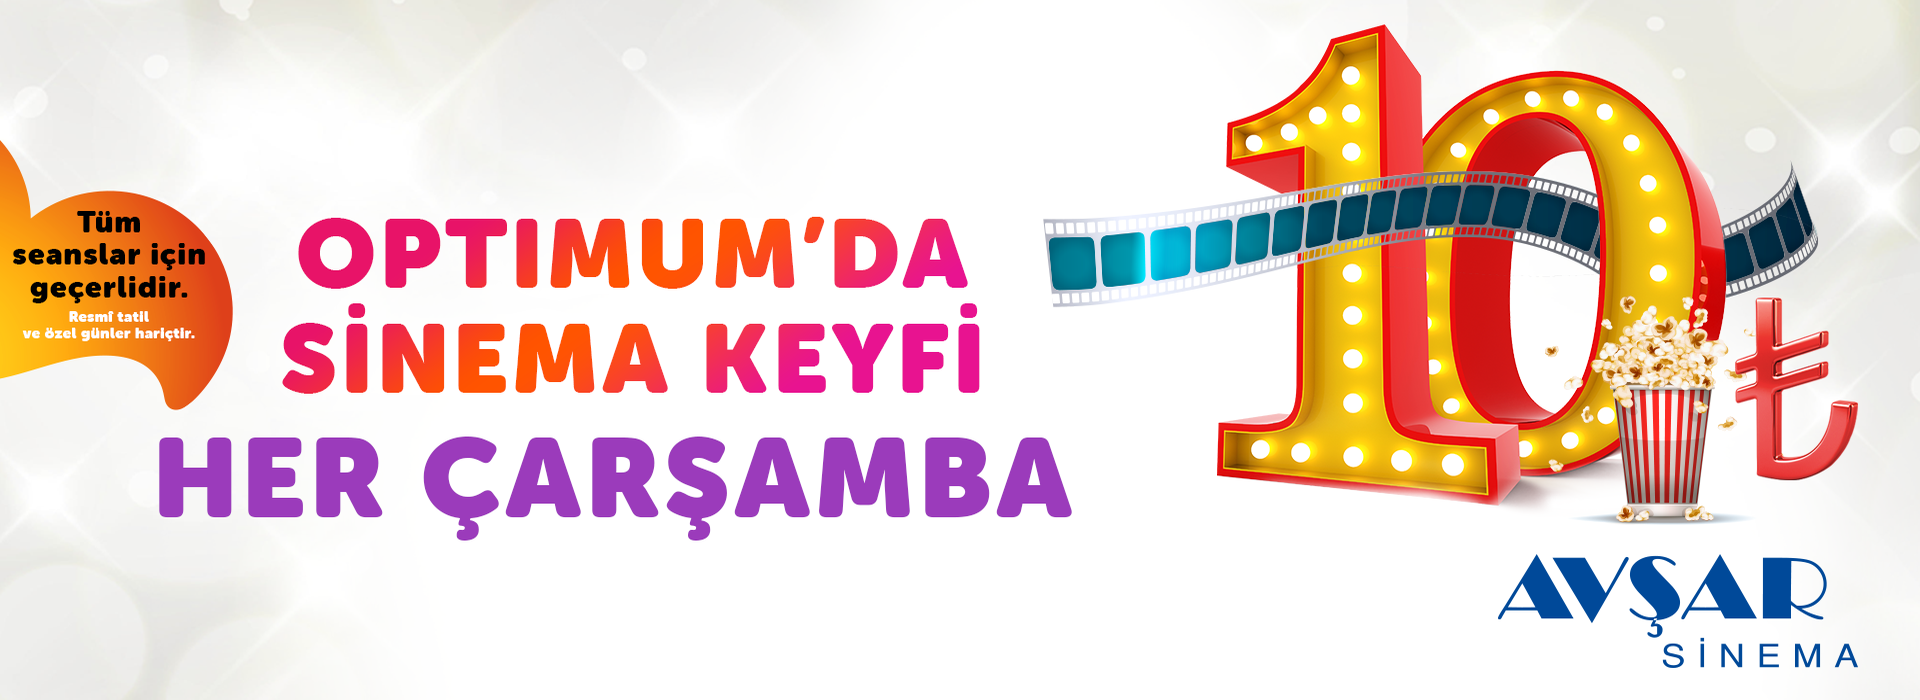 Optimum'da Sinema Keyfi